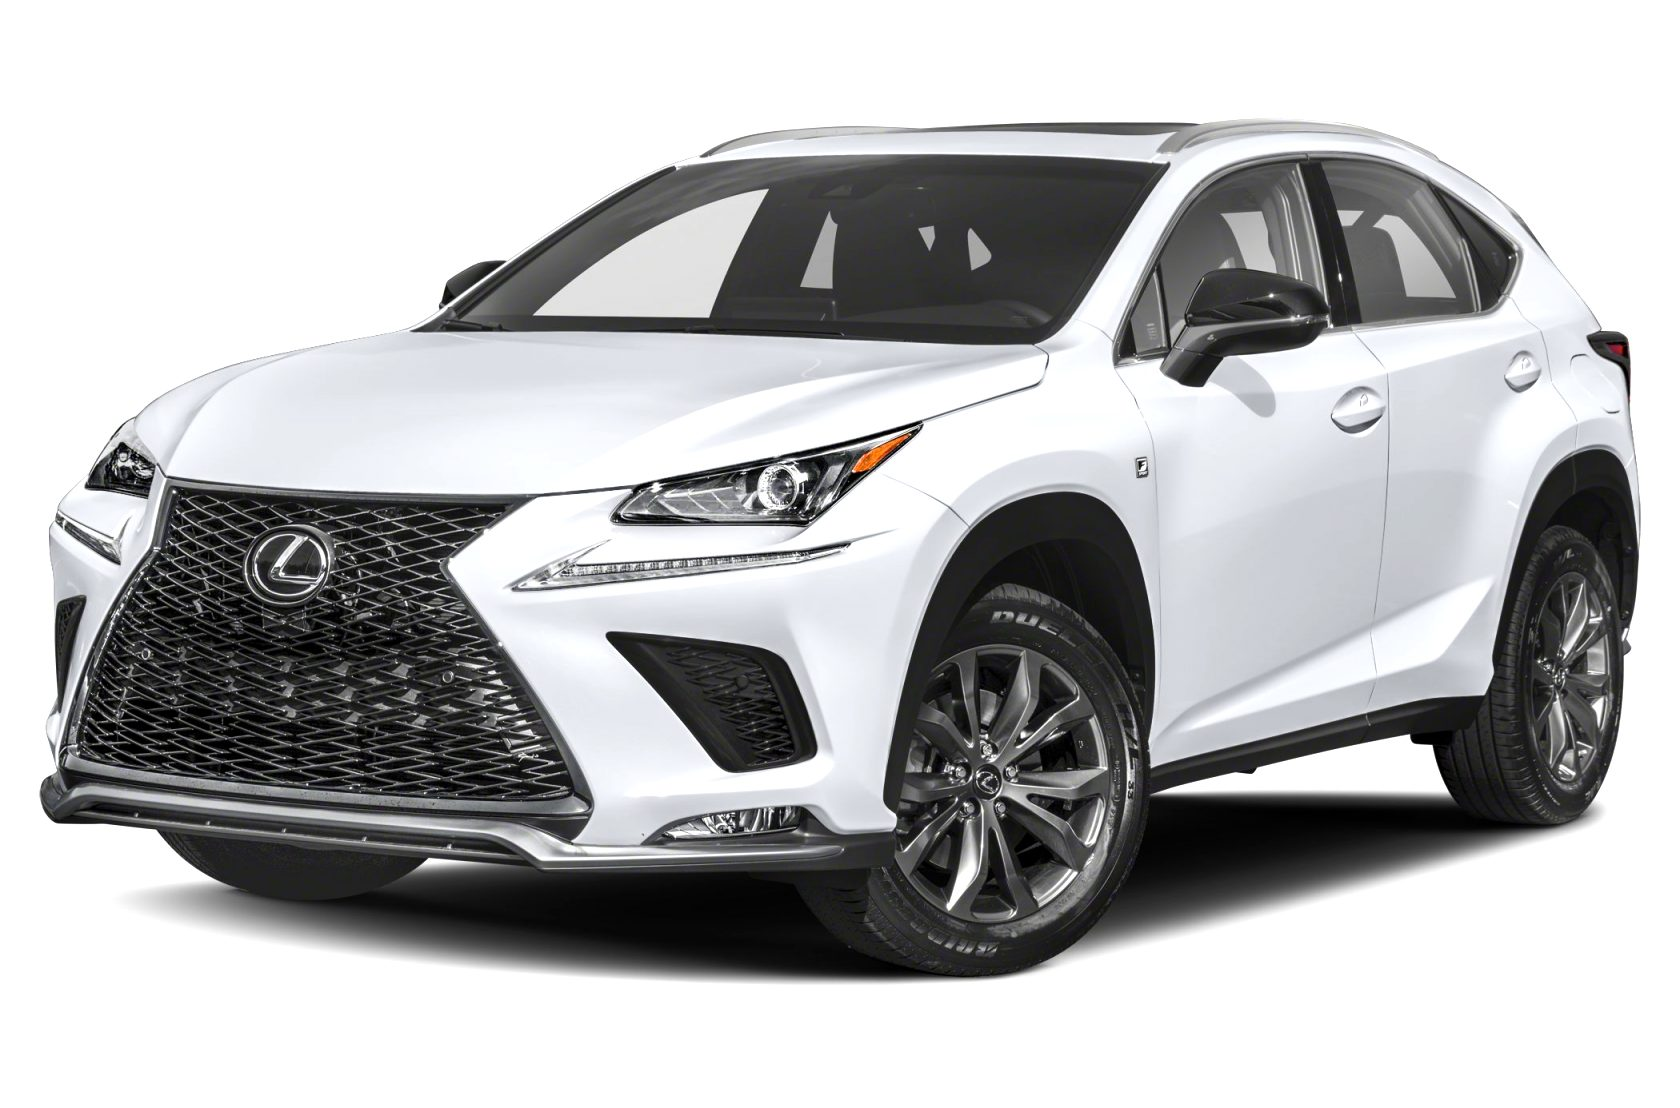 2021 lexus nx price Release Date and Concept